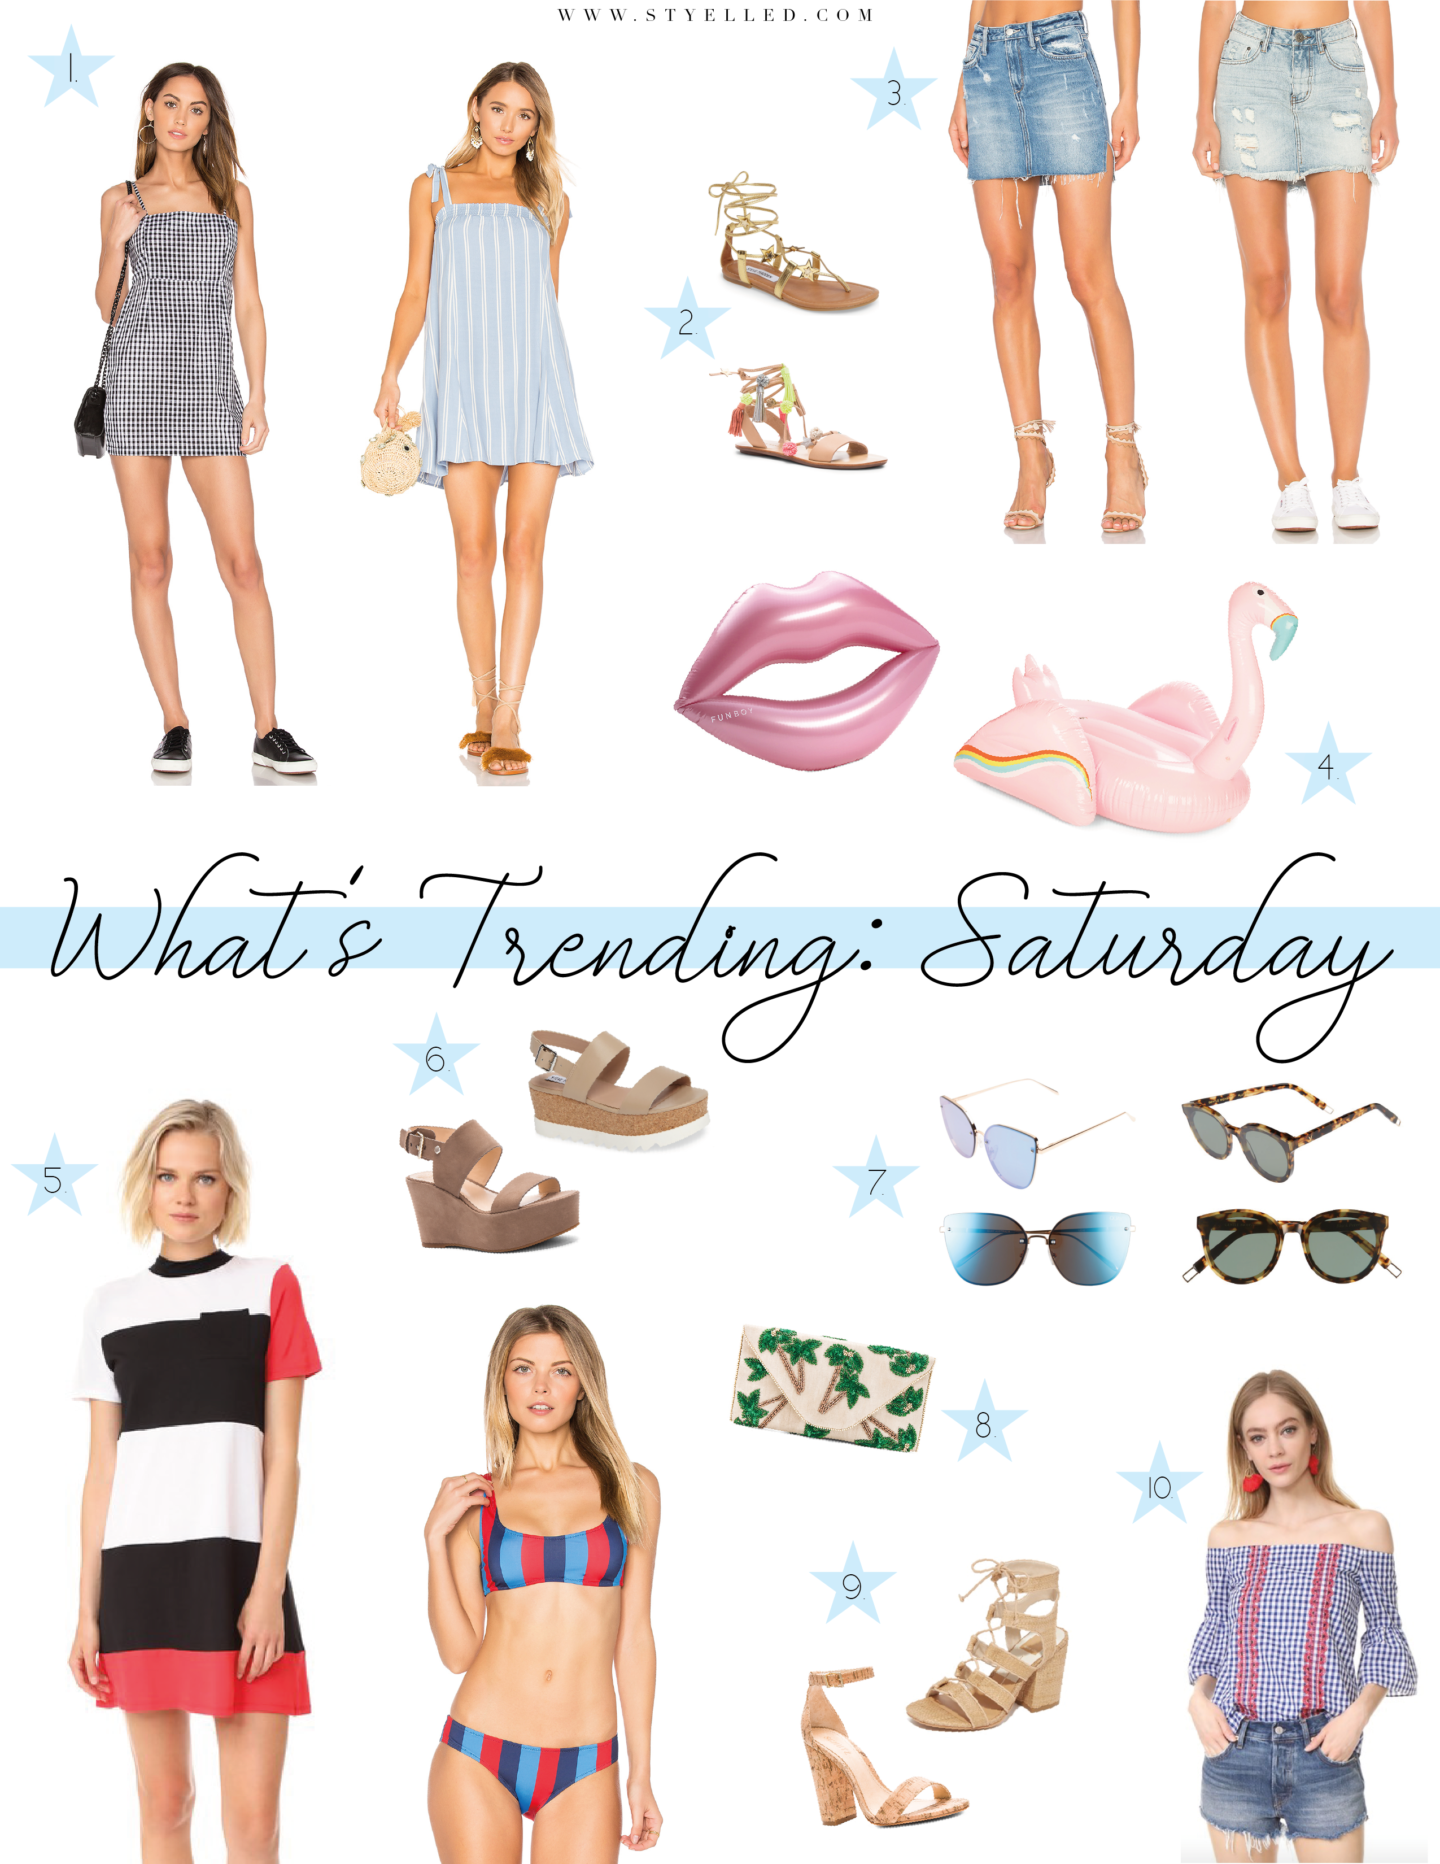 What's Trending: Saturday Fashion Finds